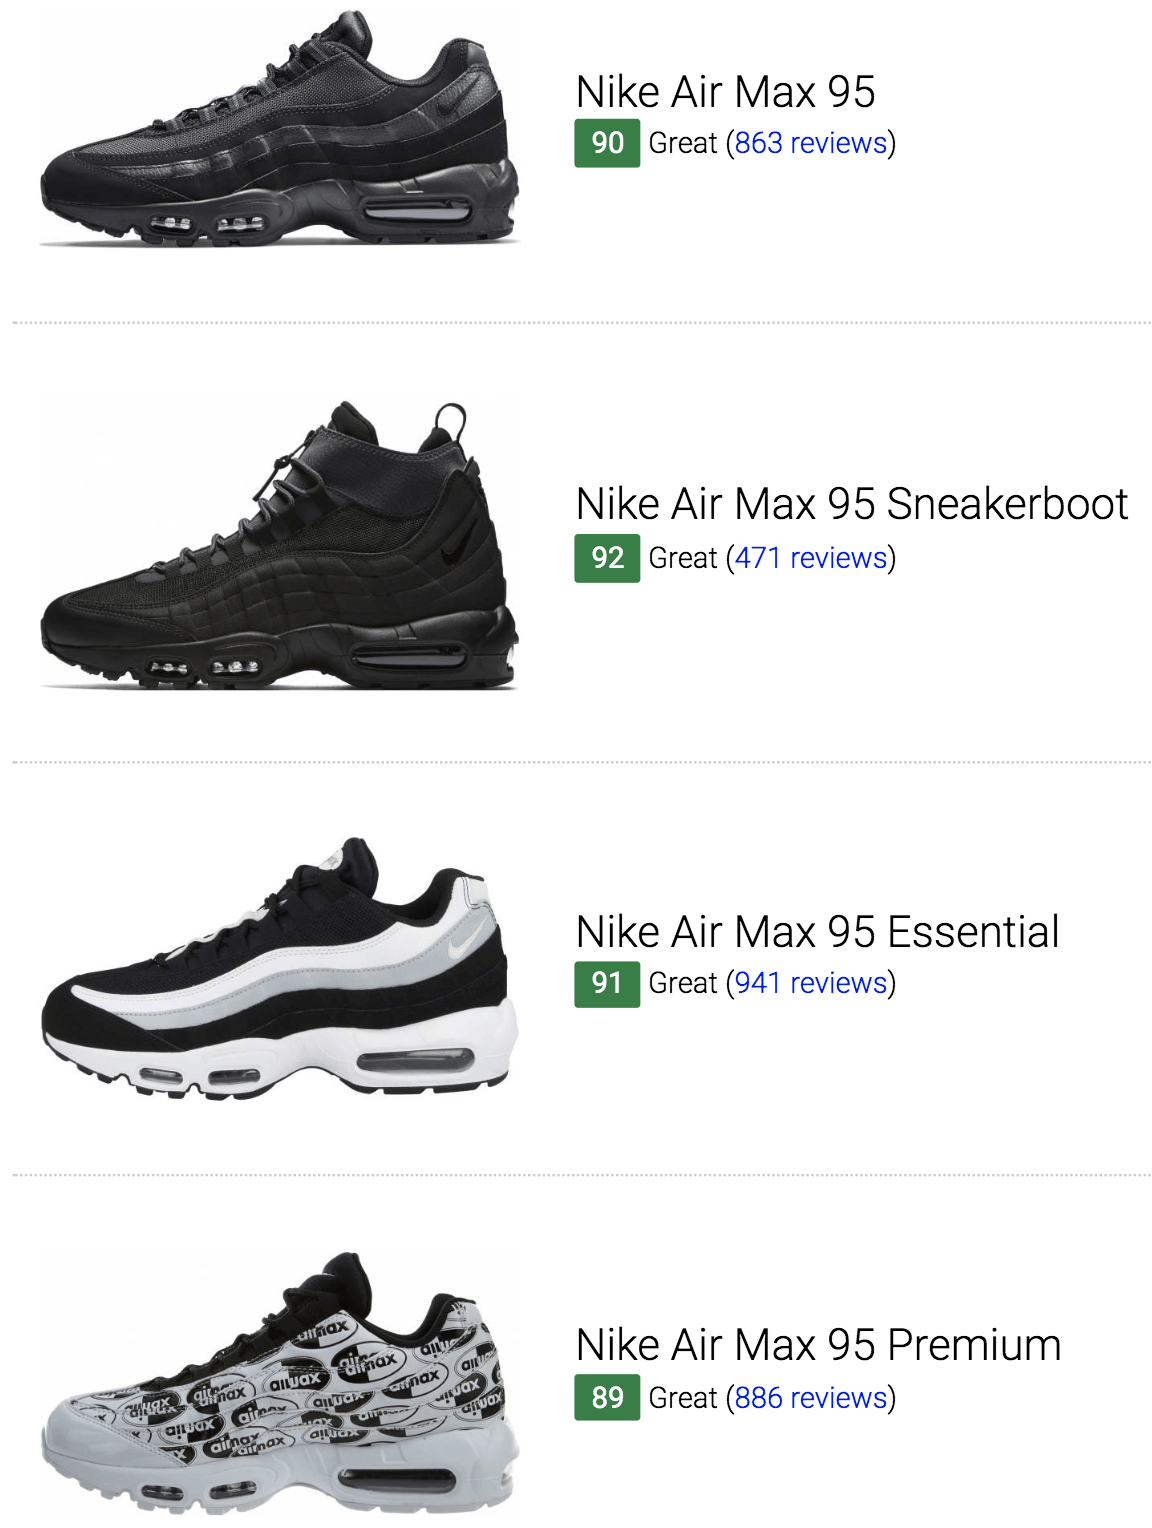 9e1c4a9a1d44c 8 Best Nike Air Max 95 Sneakers (June 2019) | RunRepeat